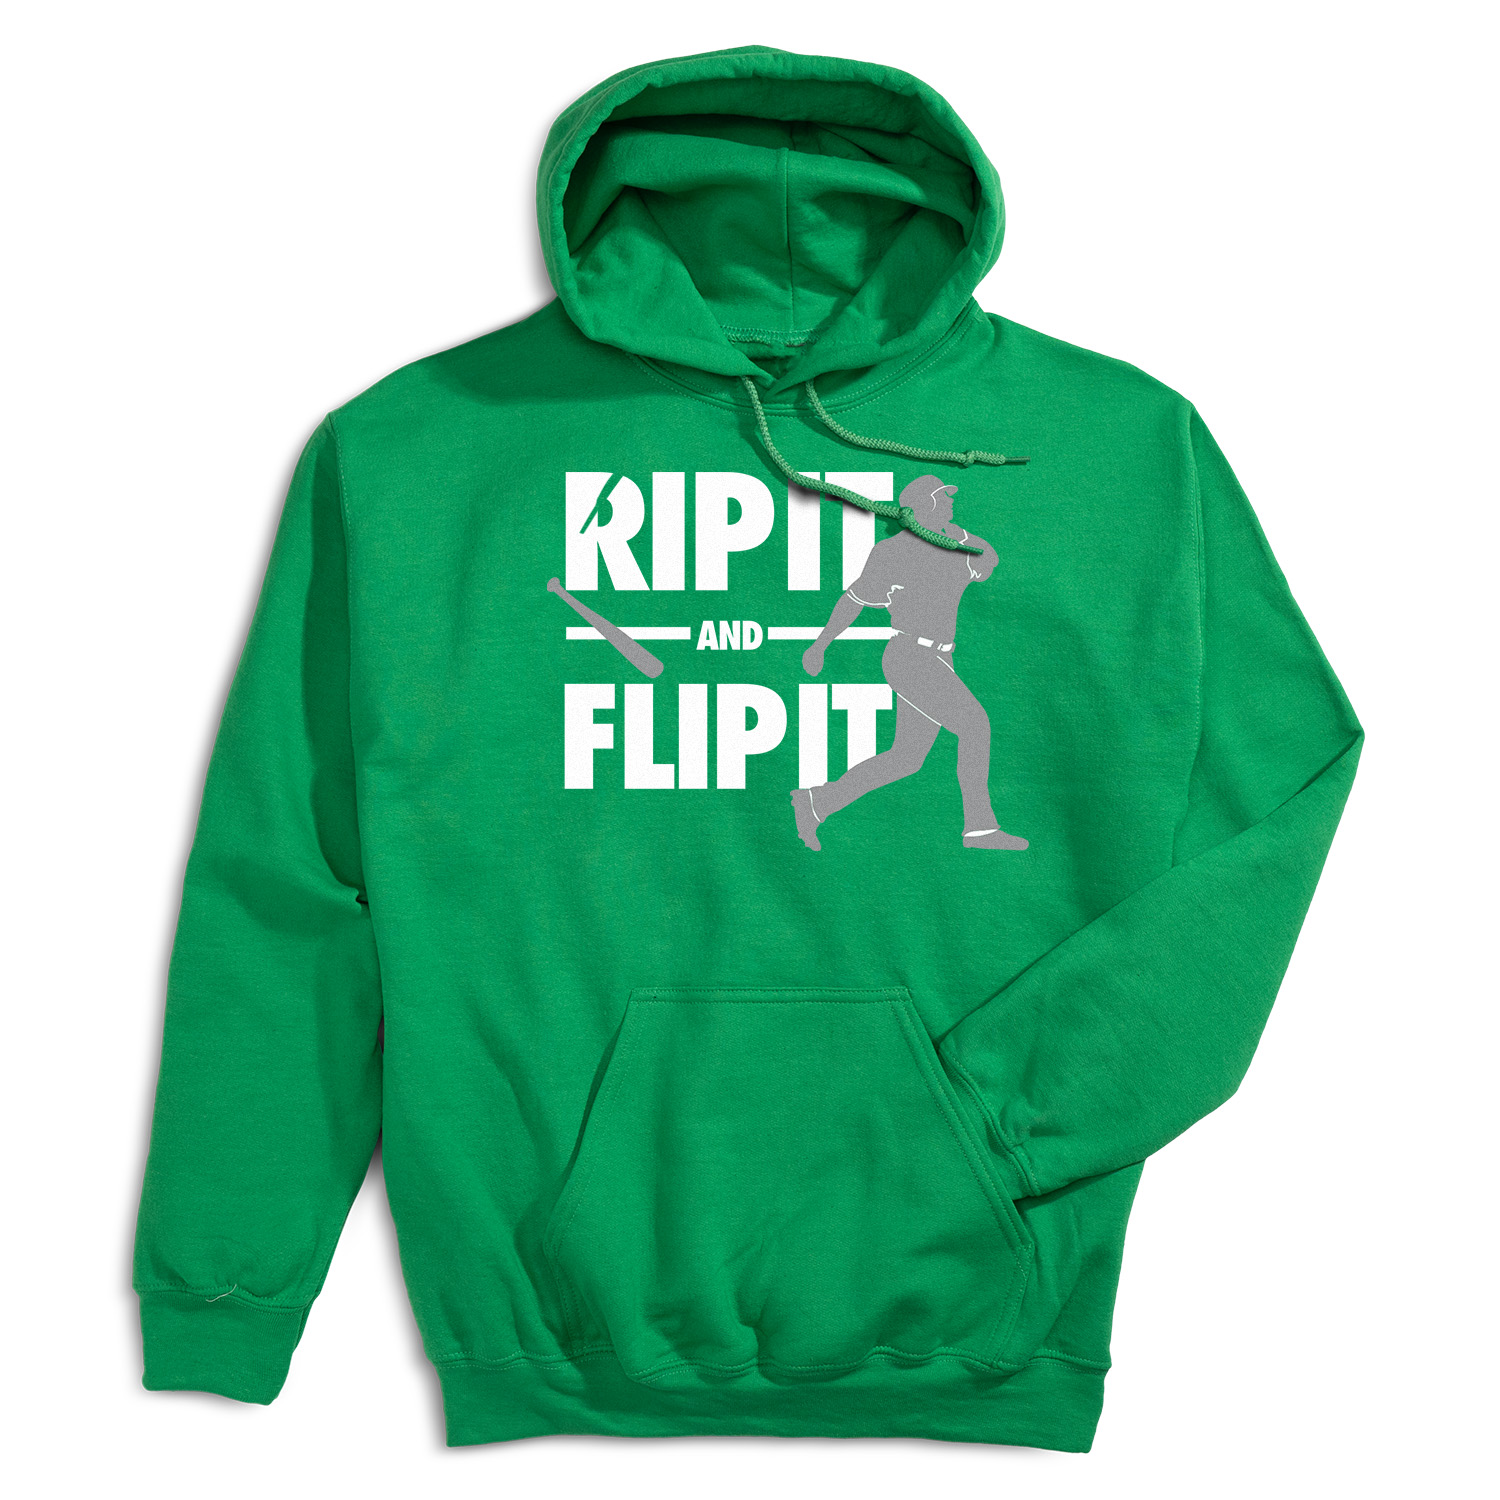 Baseball Hooded Sweatshirt - Rip It Flip It